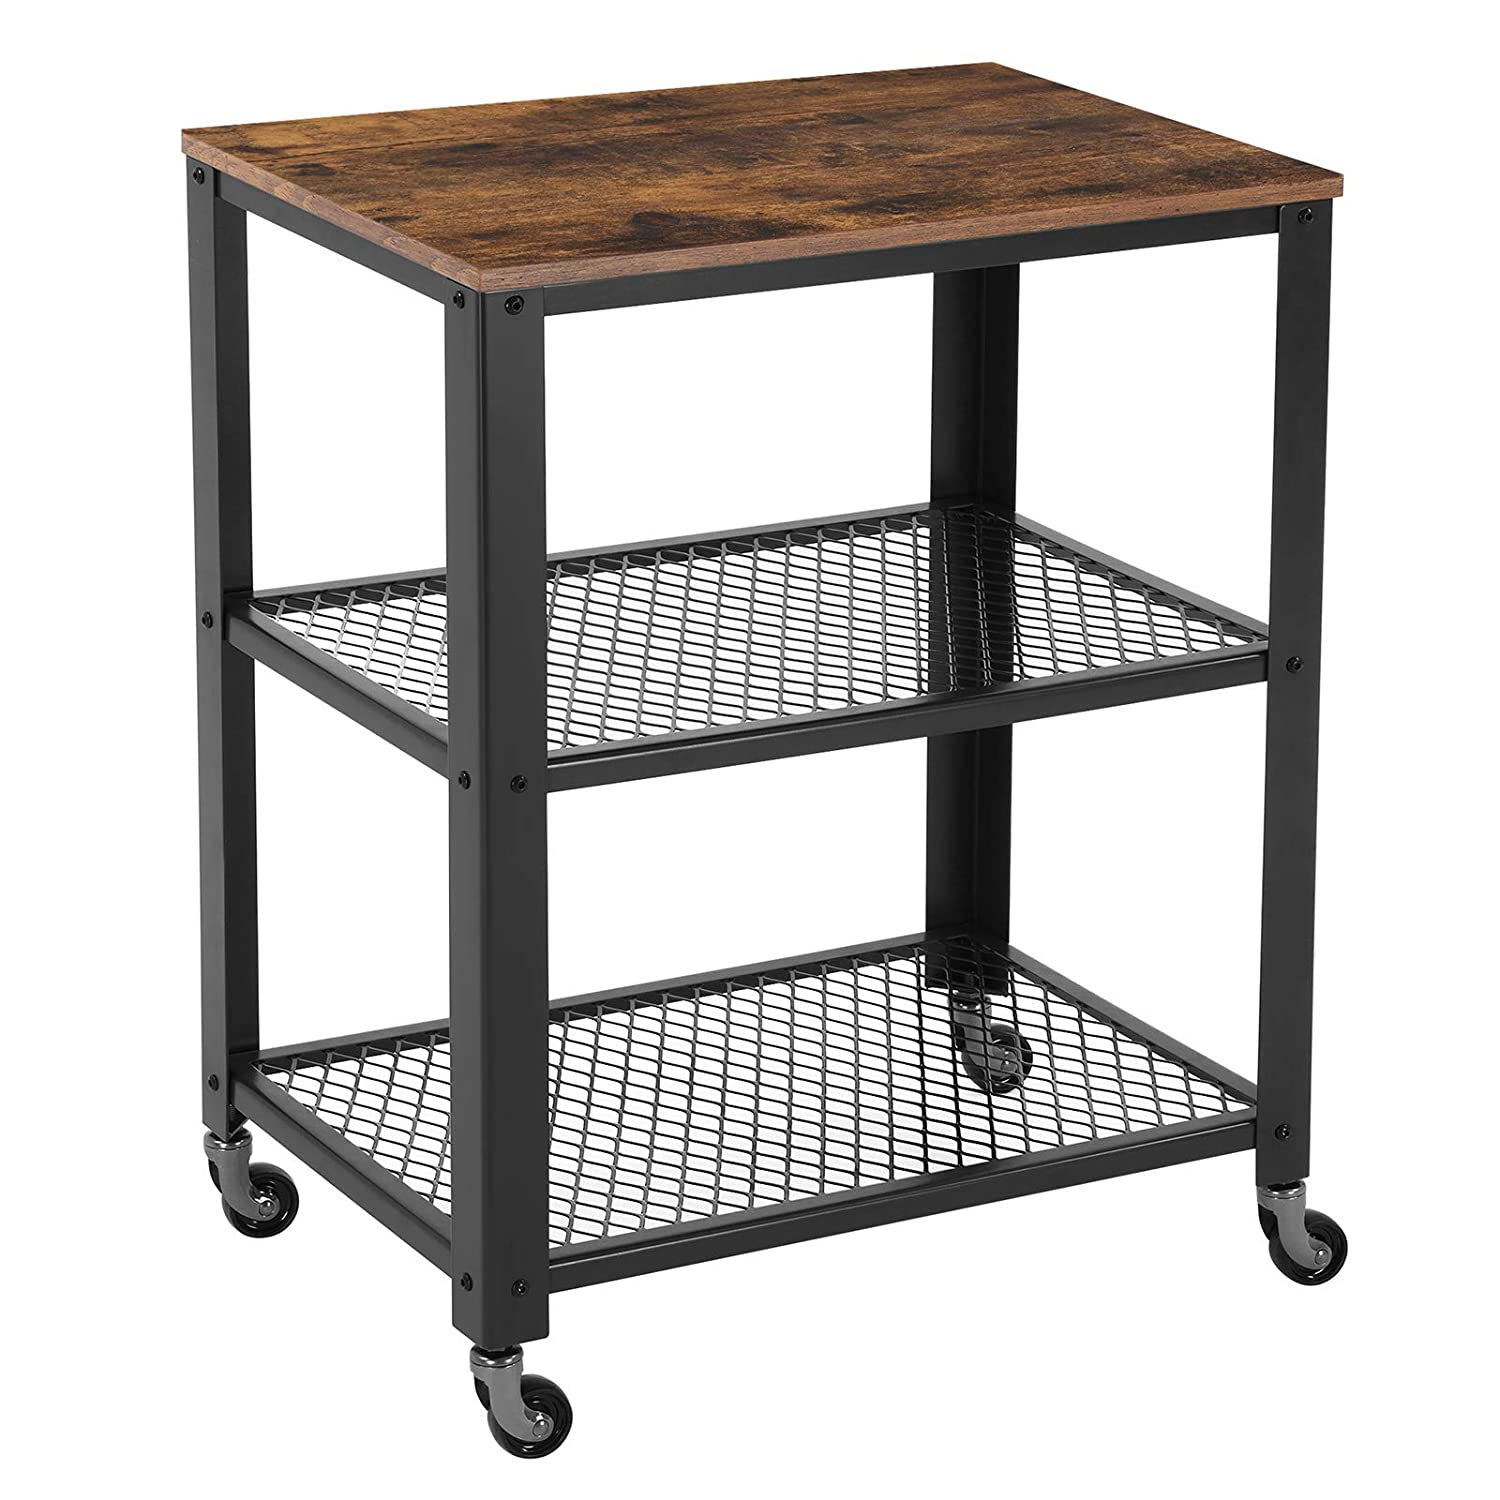 dd9c33927002 VASAGLE Industrial Serving Cart, 3-Tier Kitchen Utility Cart on Wheels with  Storage for Living Room, Wood Look Accent Furniture with Metal Frame ...